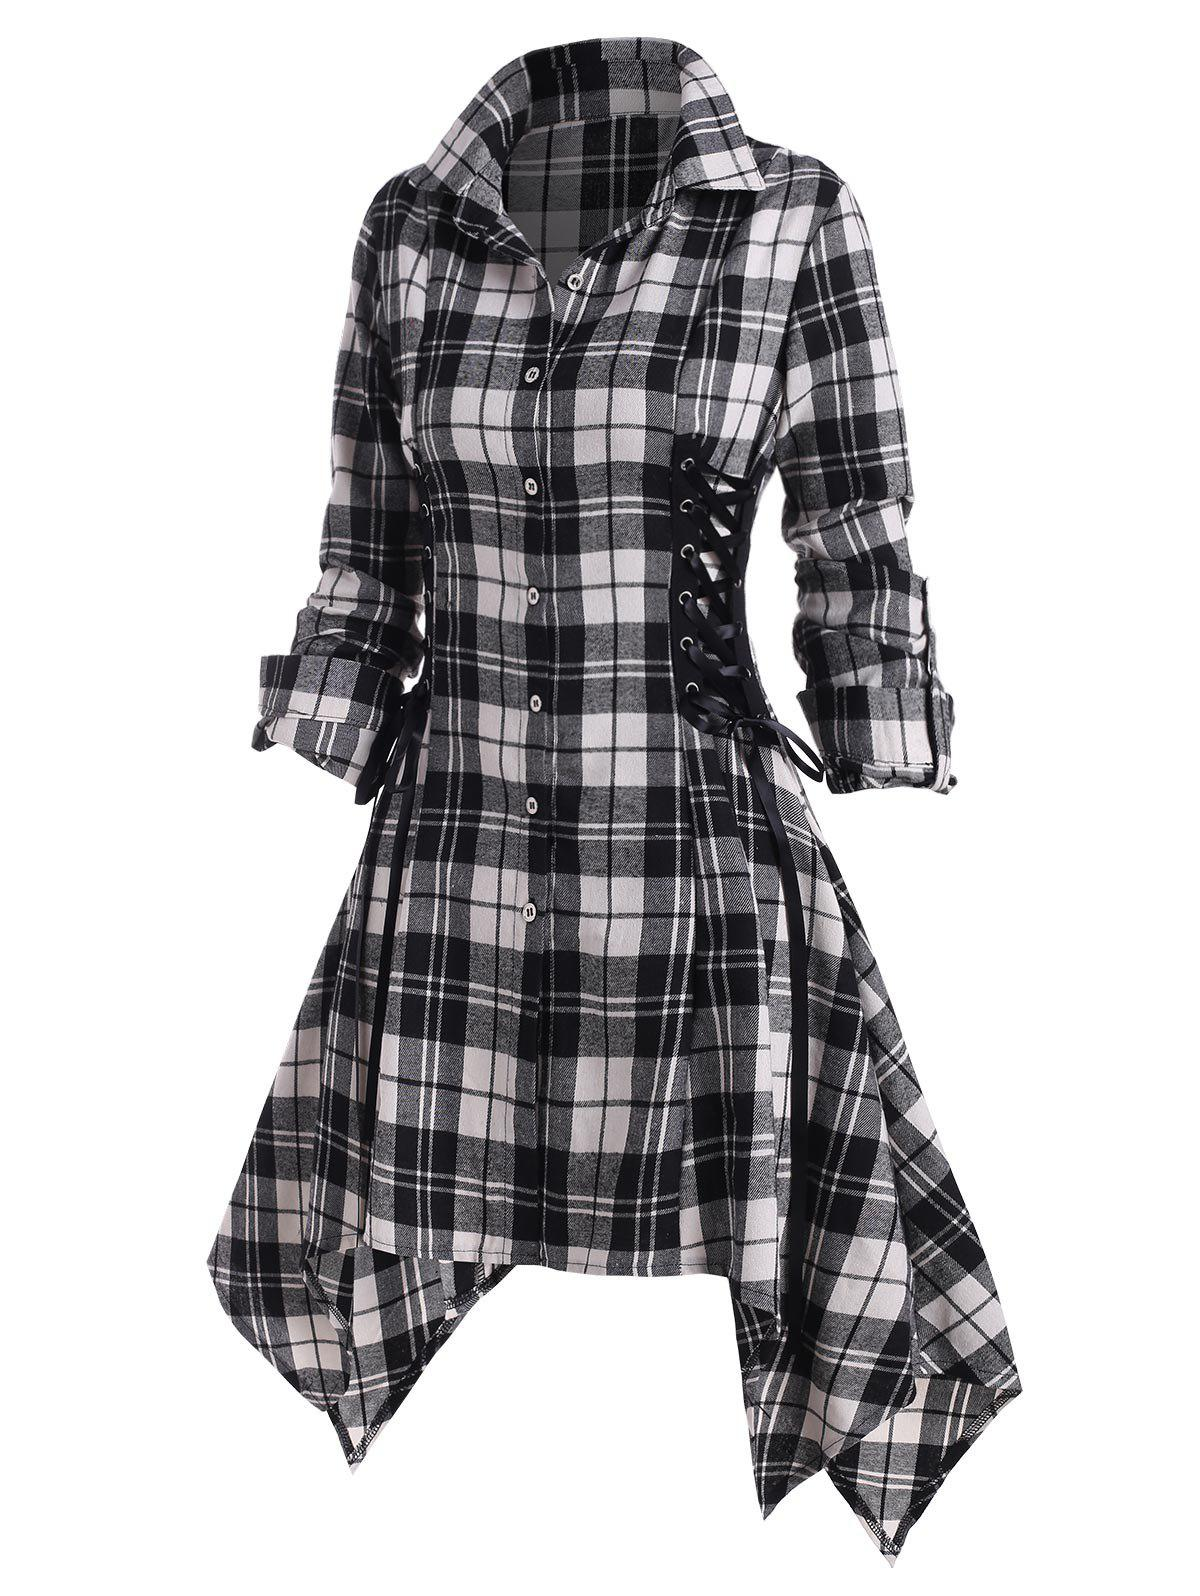 Plaid Lace Up Rolled Up Sleeve Handkerchief Shirt Dress - WHITE XXL